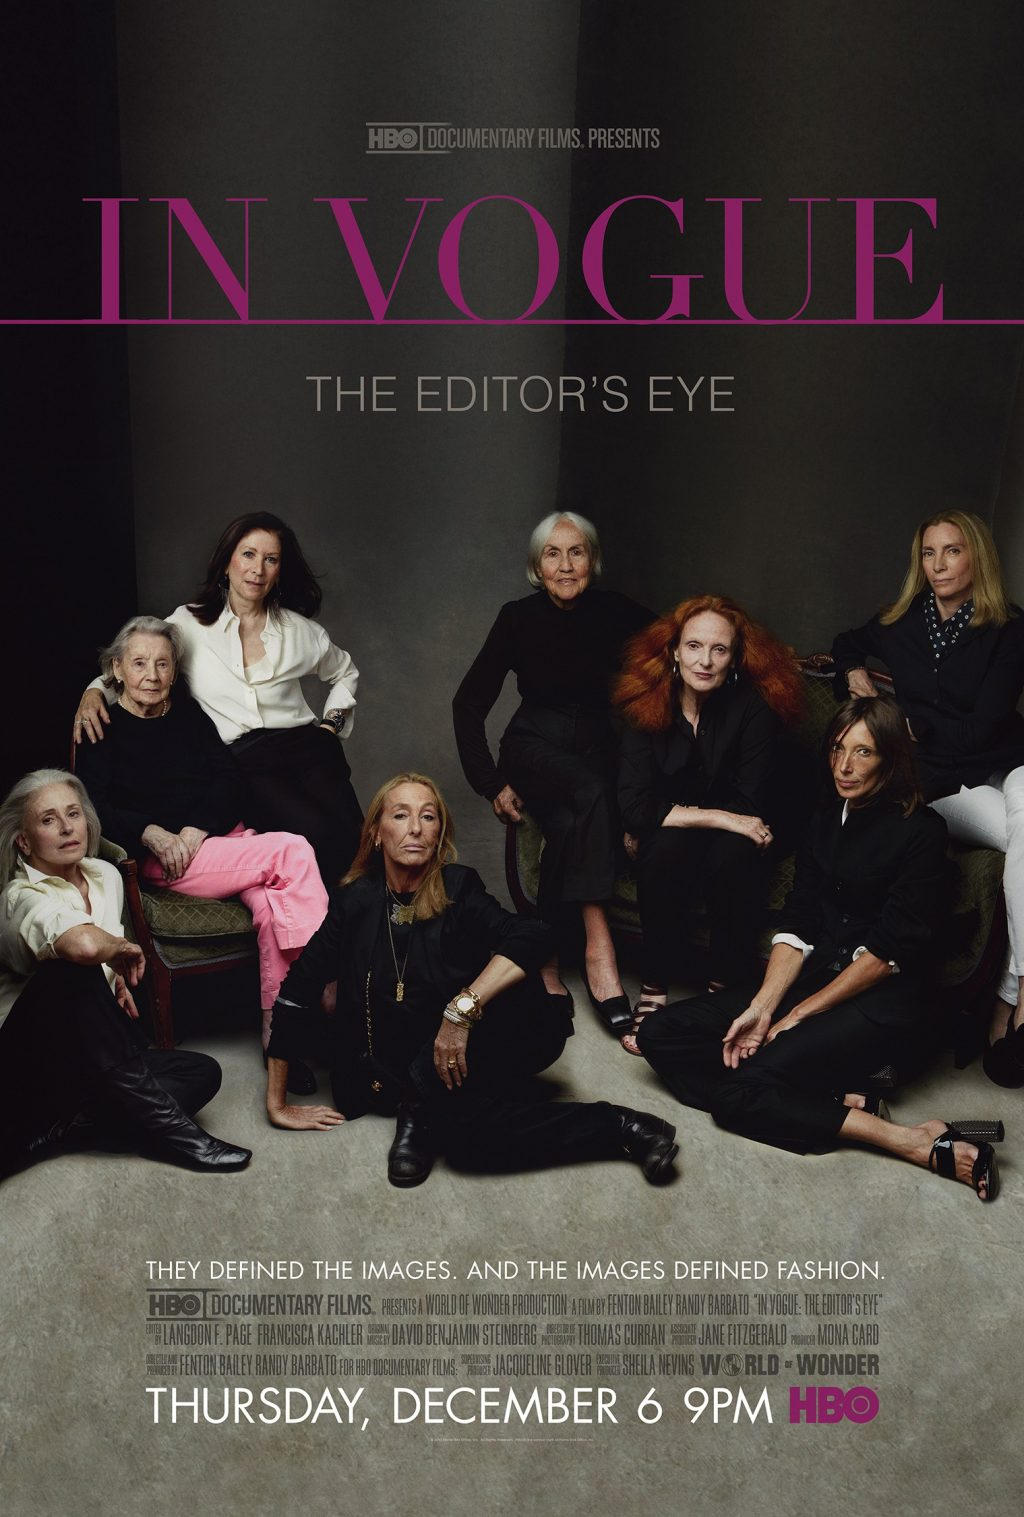 in vogue editors eyes 2